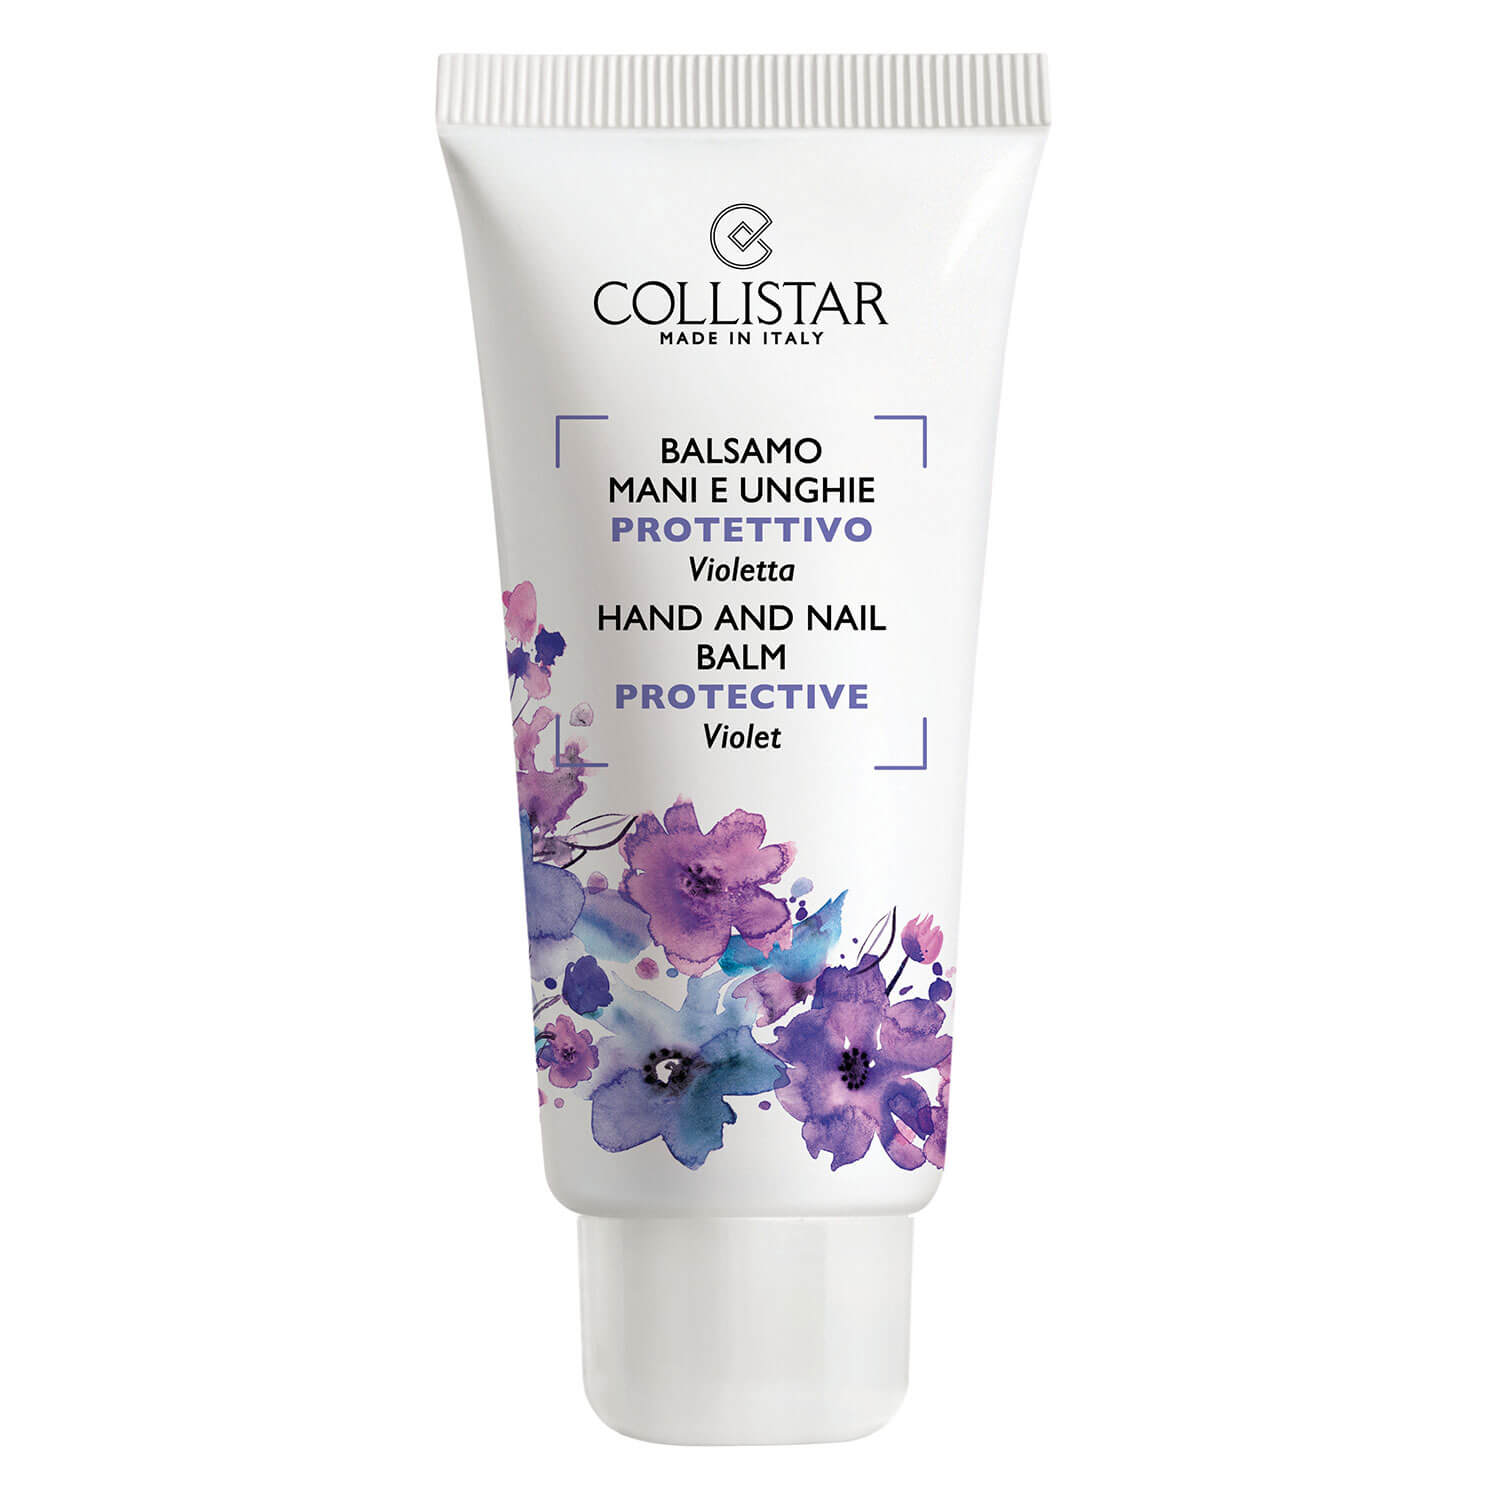 CS Body - Hand and Nail Balm Protective Violet